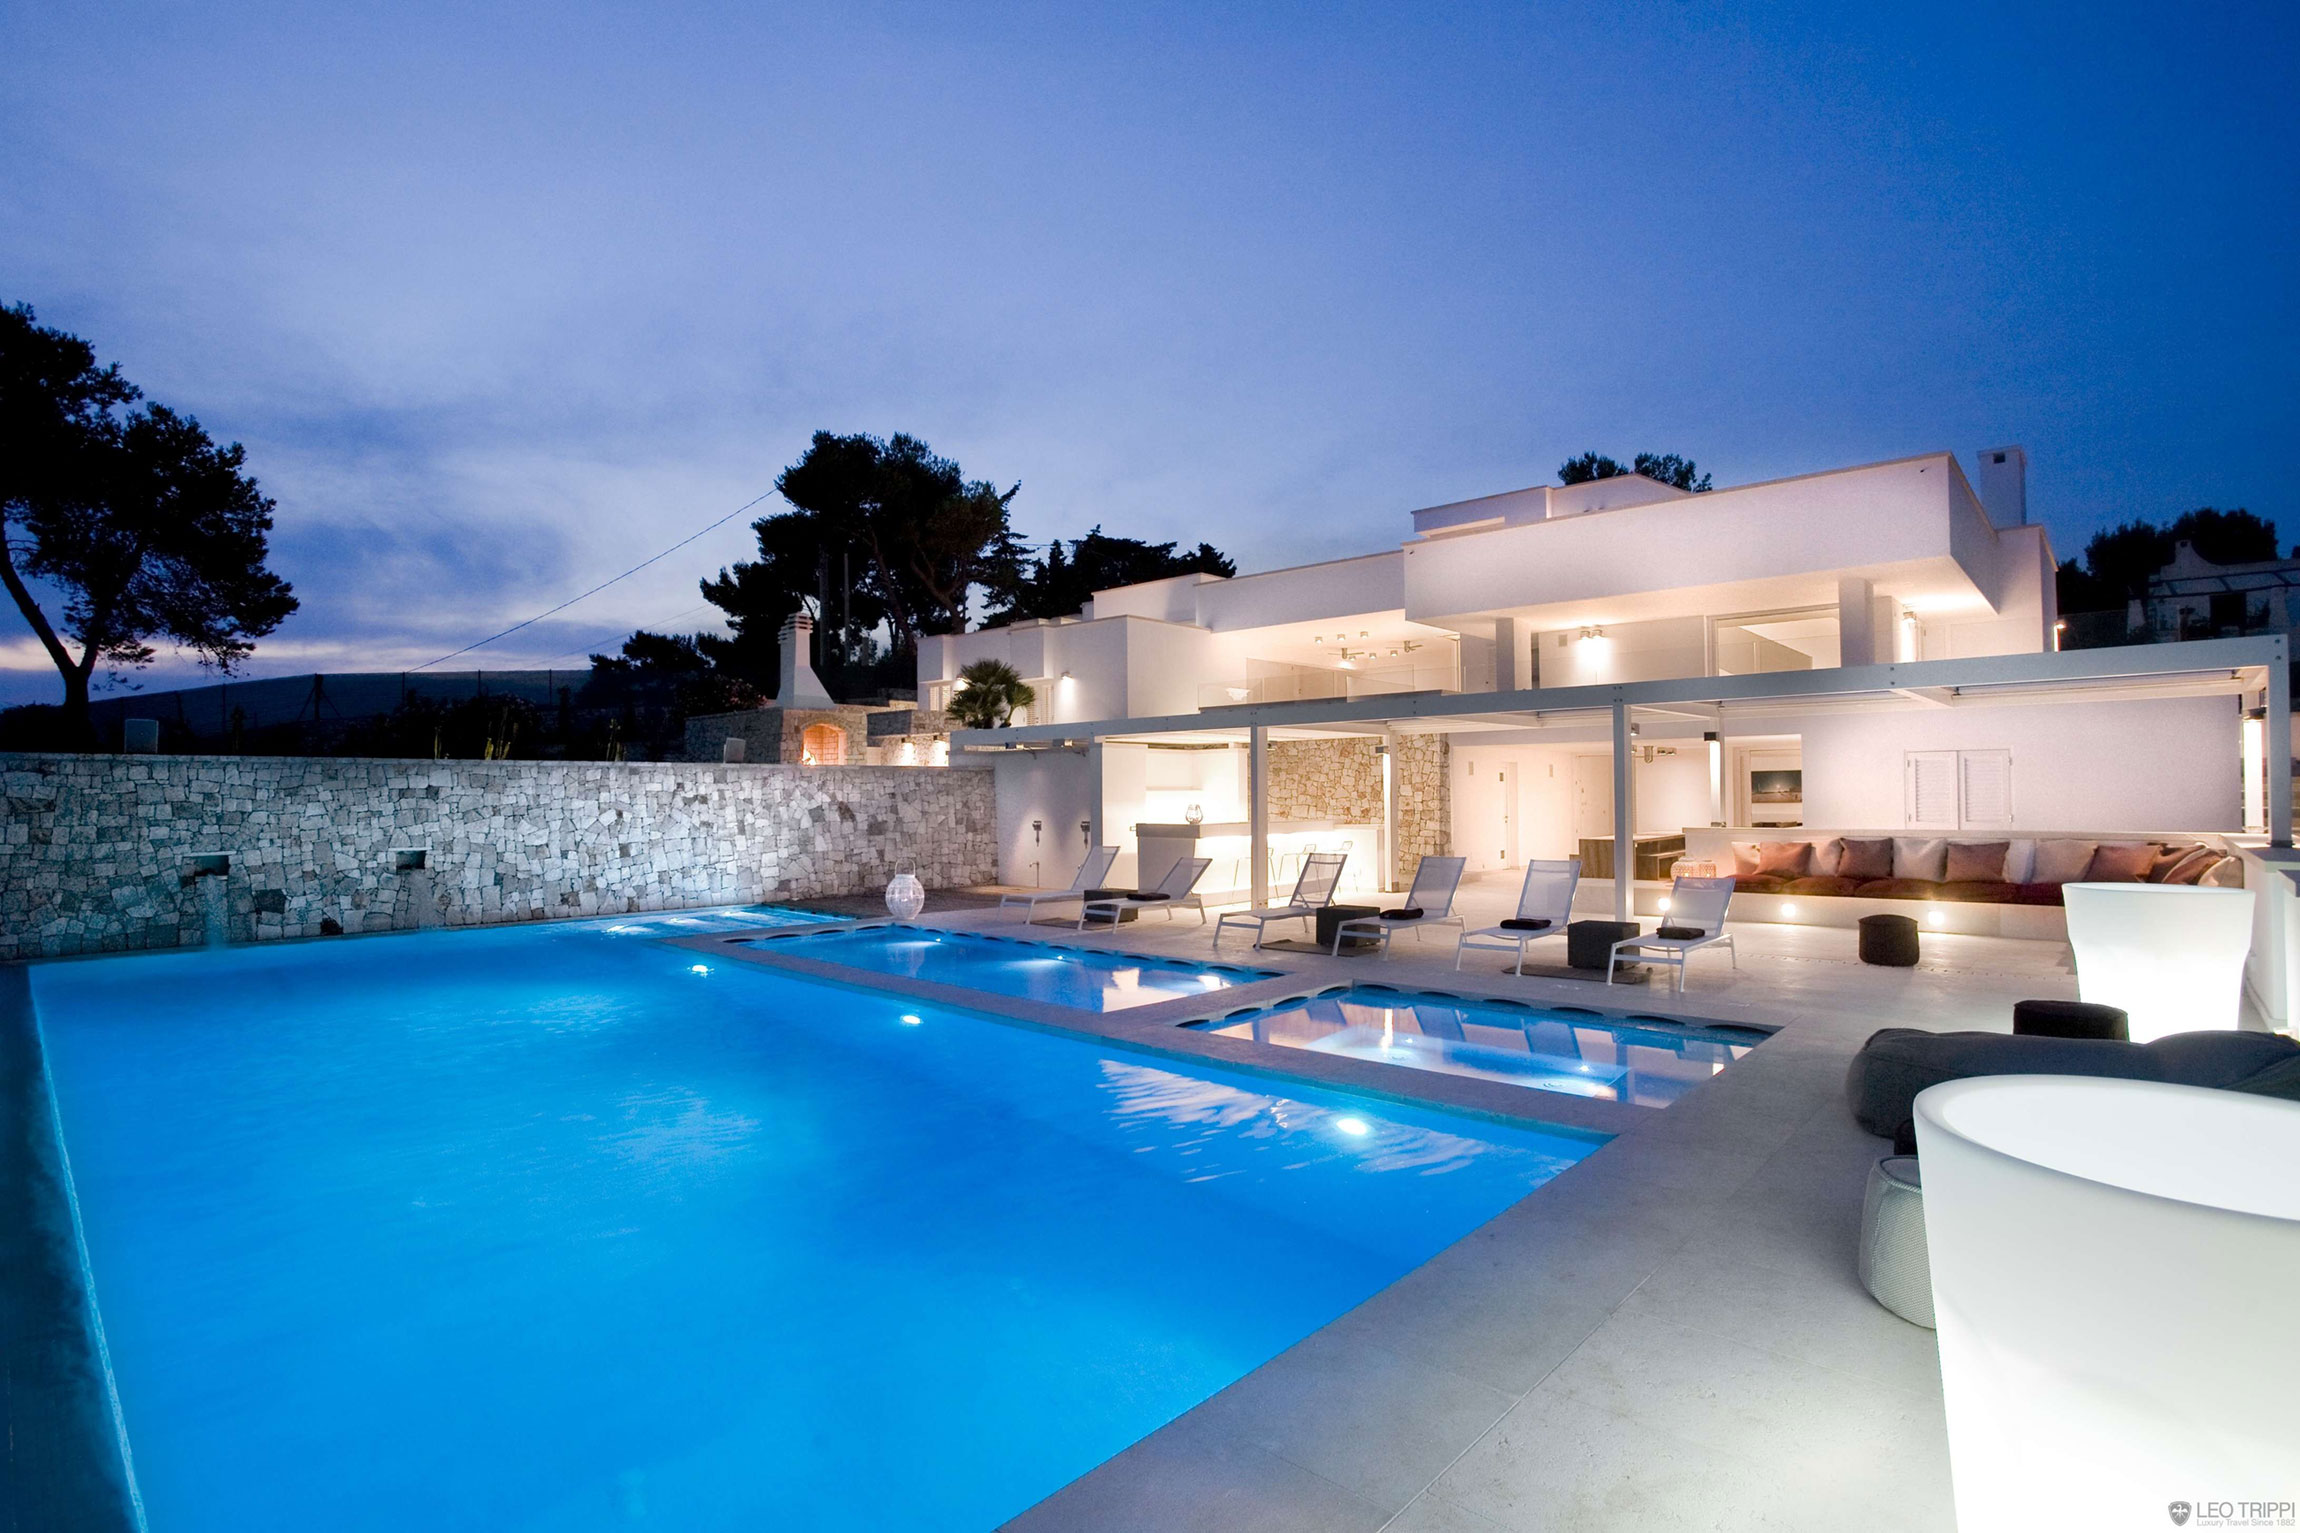 Villa bianca in apulia italy for Pool villa design